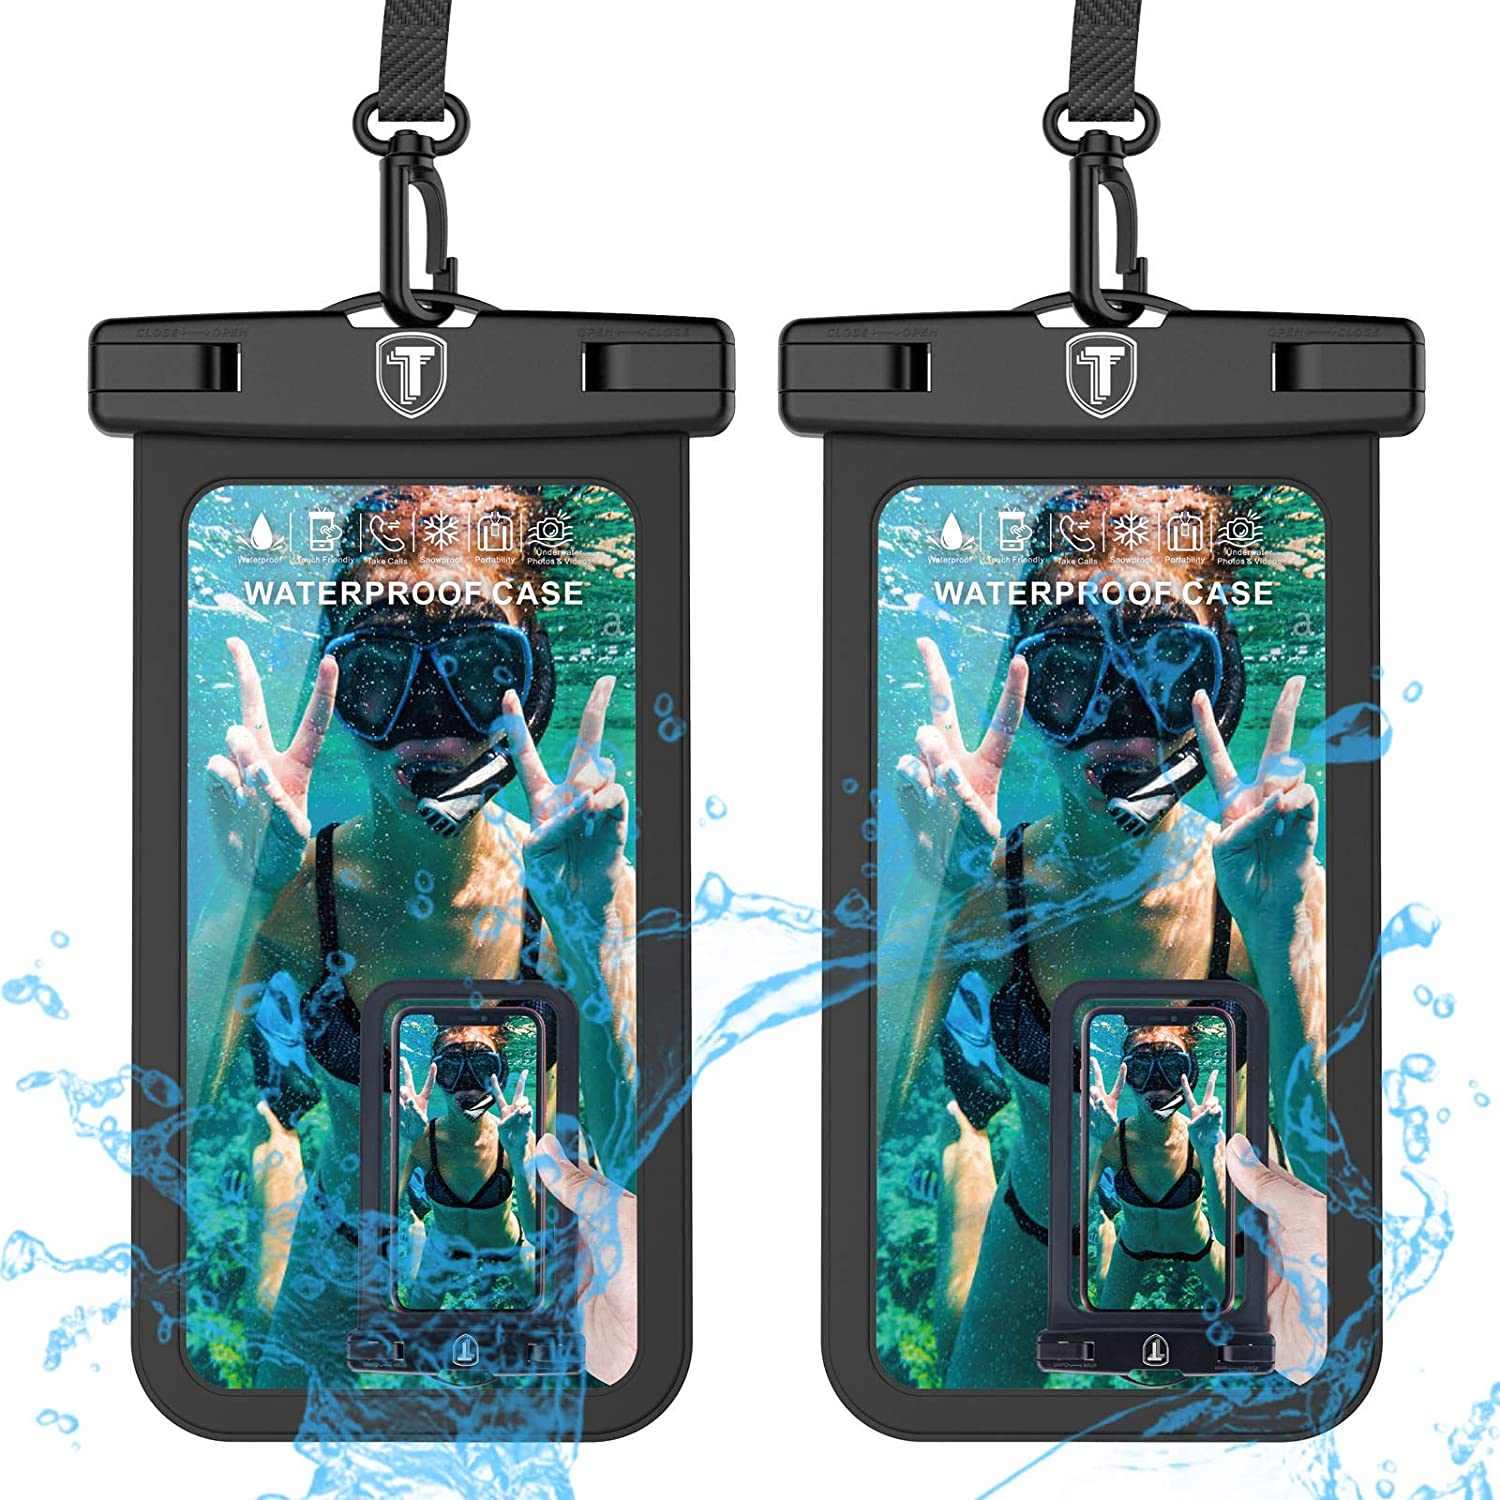 Universal Waterproof Case, 2-Pack Tekcoo IPX8 Phone Black Pouch Dry Bag Compatible with iPhone 11 12 Pro Max/Xs Max/XR/X & Galaxy Note 20/S21 Ultra/S20+/A71/A02S/A42/A52/A32/A21/A12/A01 & Up to 6.9